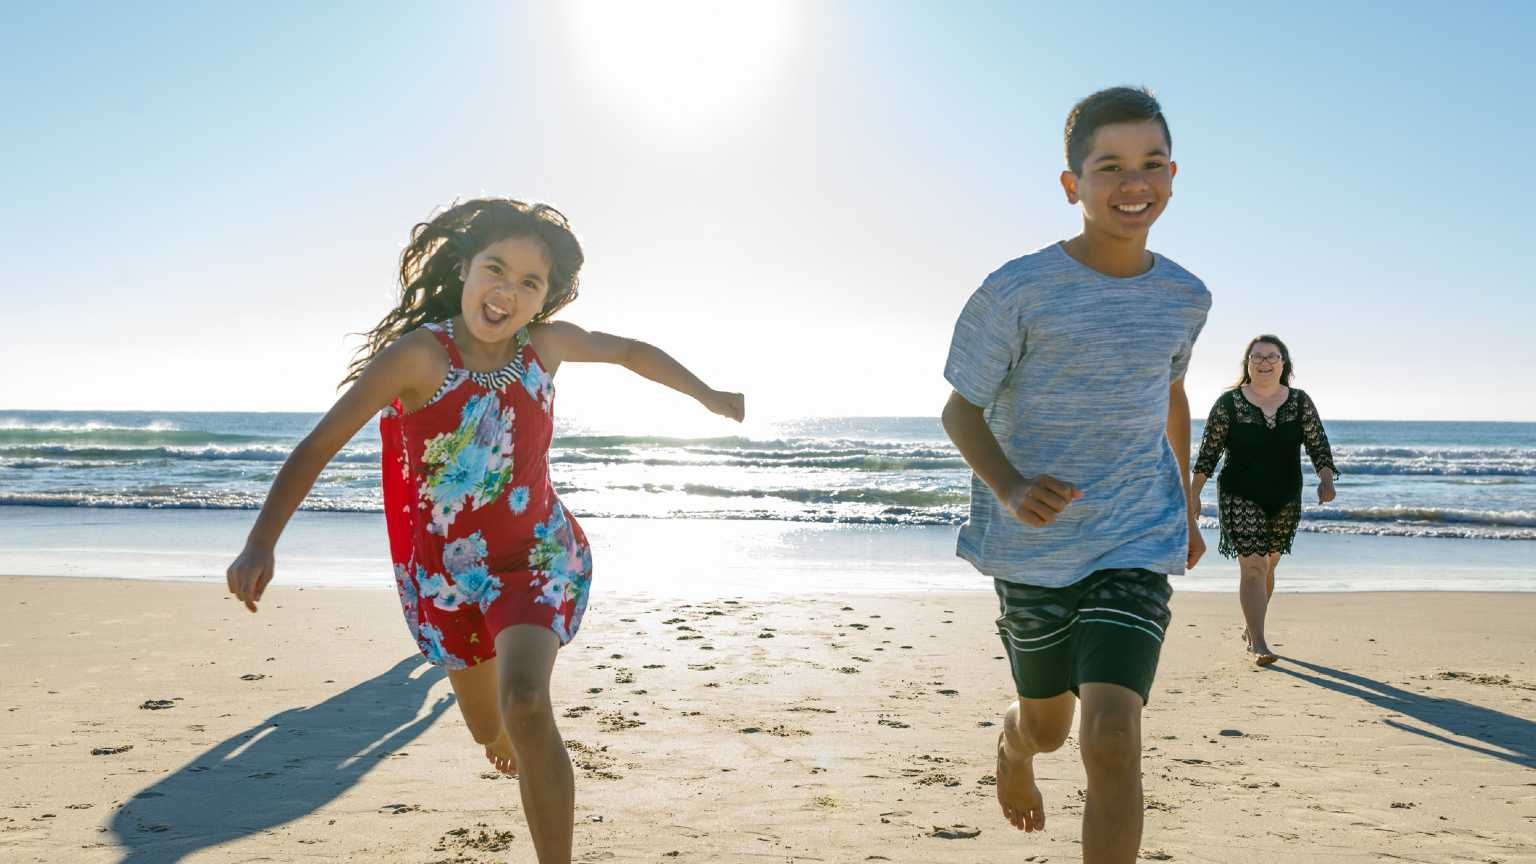 Pair of kids running on the beach with their parents/caregivers behind them.